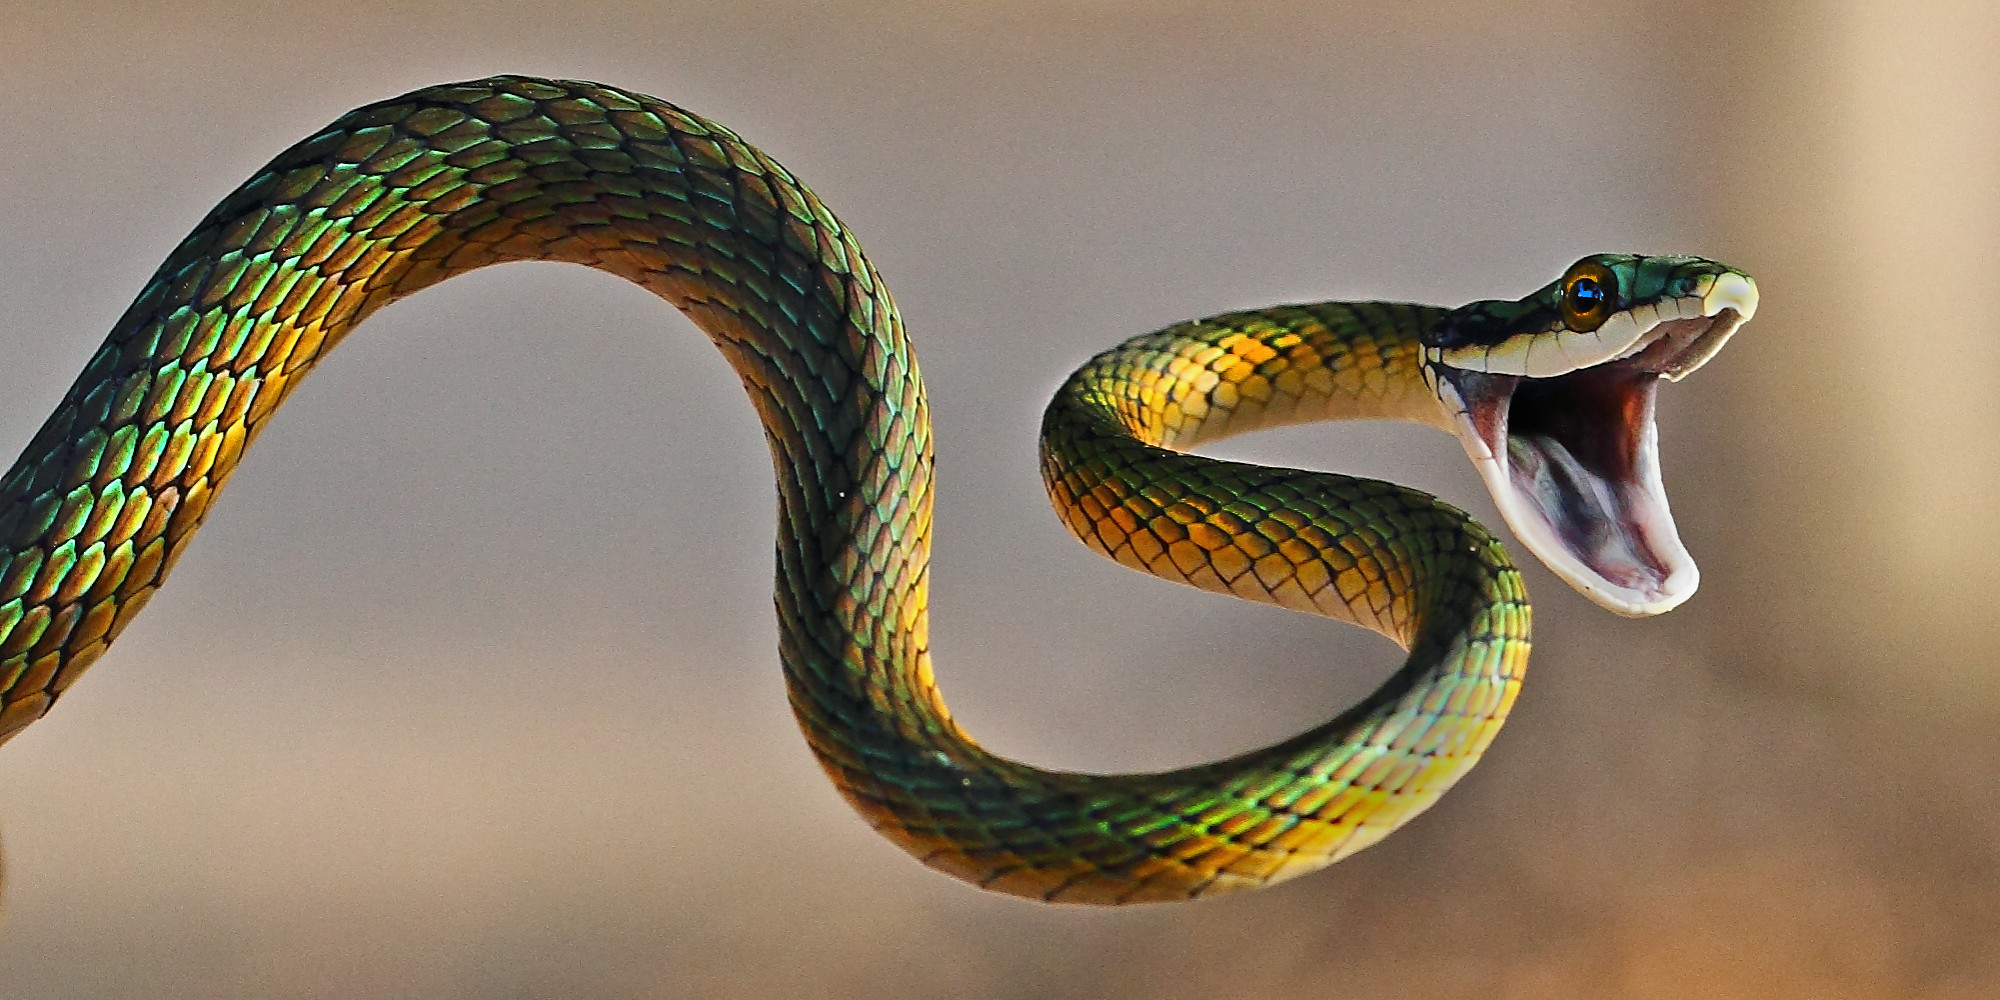 How to Prevent and Defend Against a Deadly Snake Attack